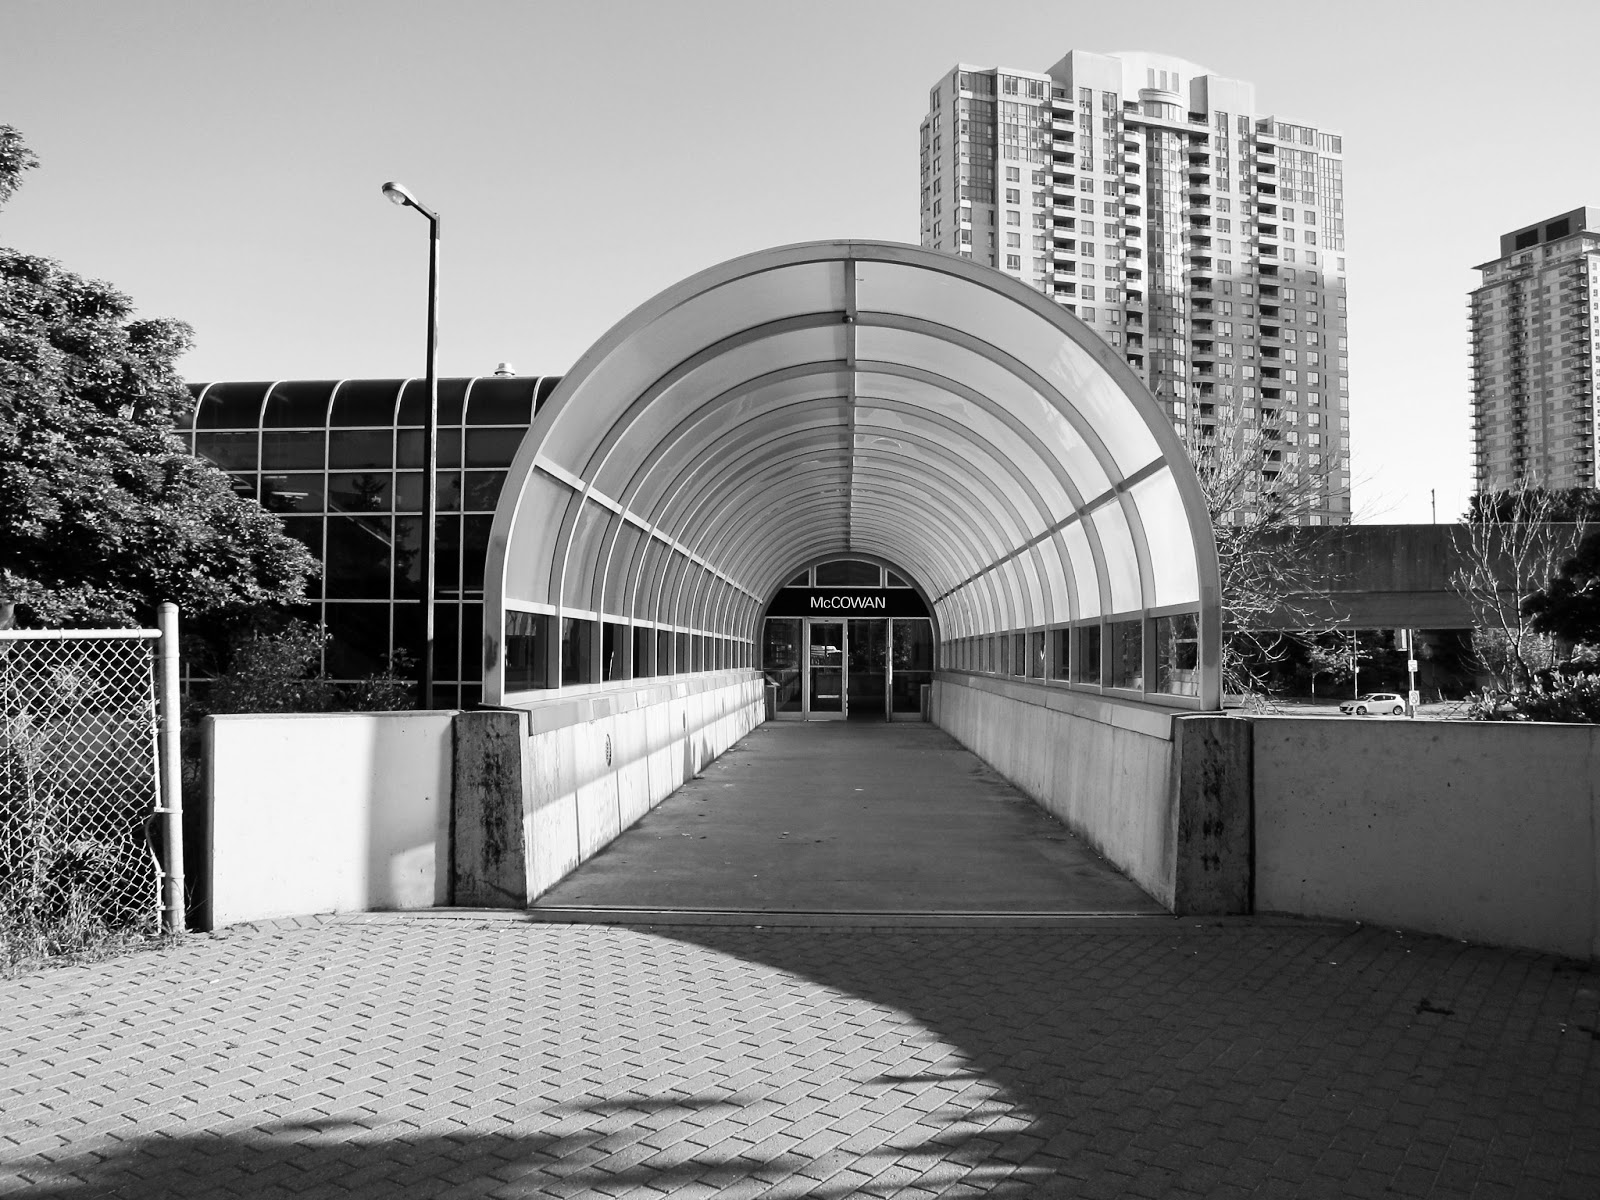 McCowan station Pedestrian Way entrance